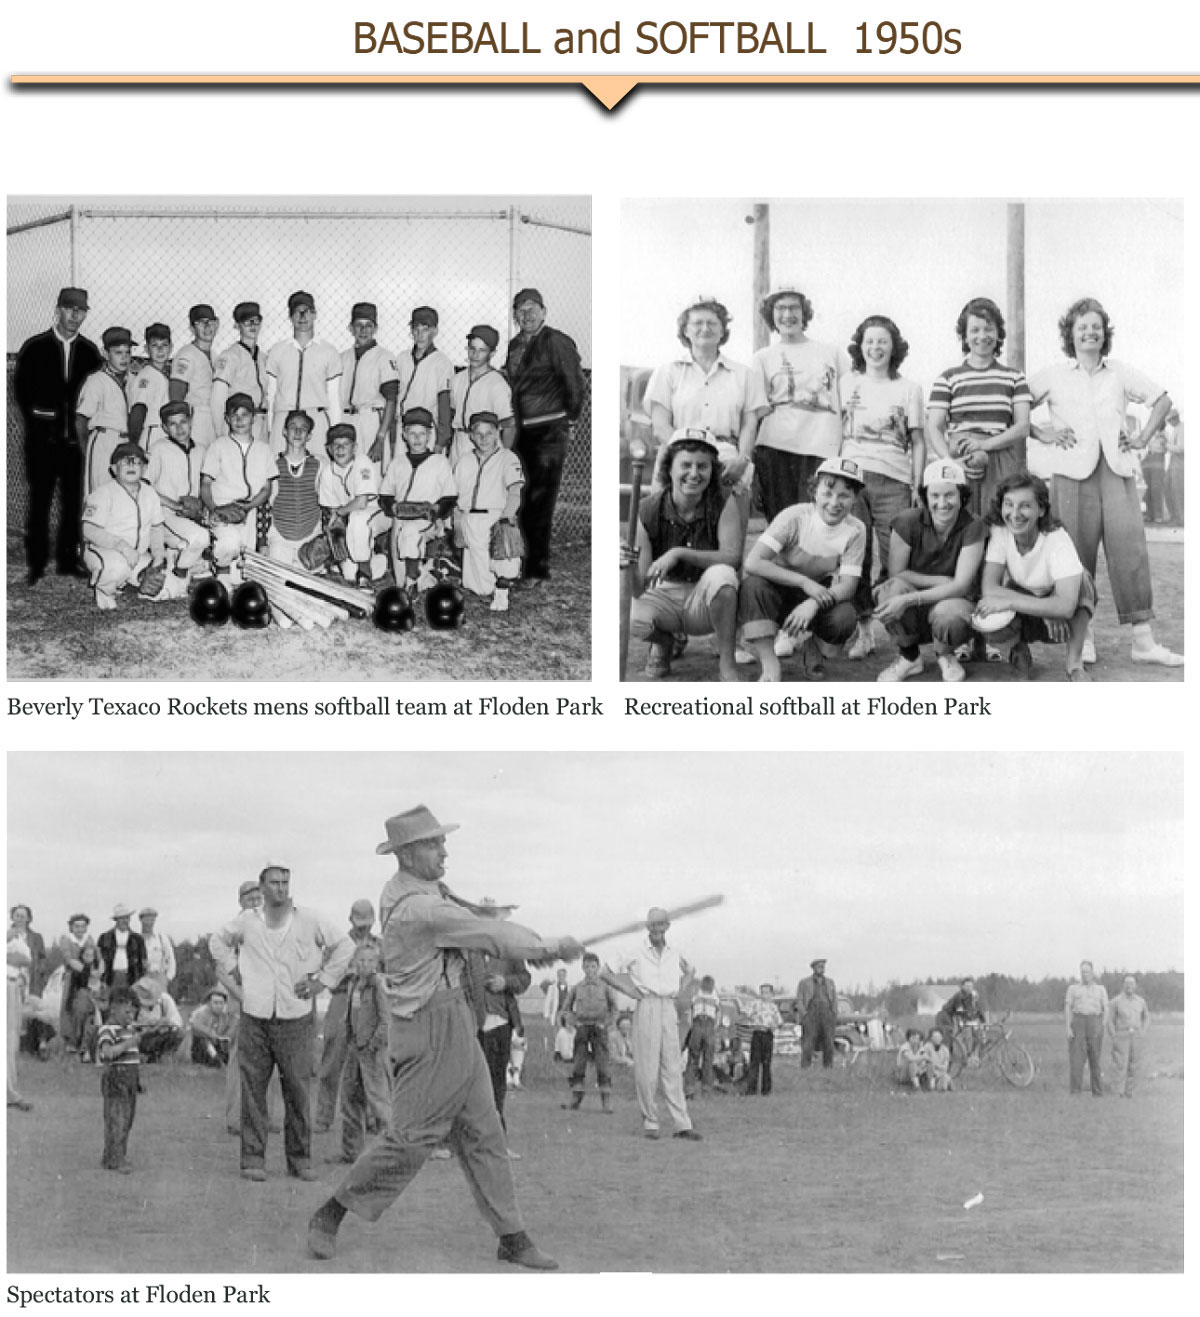 1950s Baseball and Softball 1